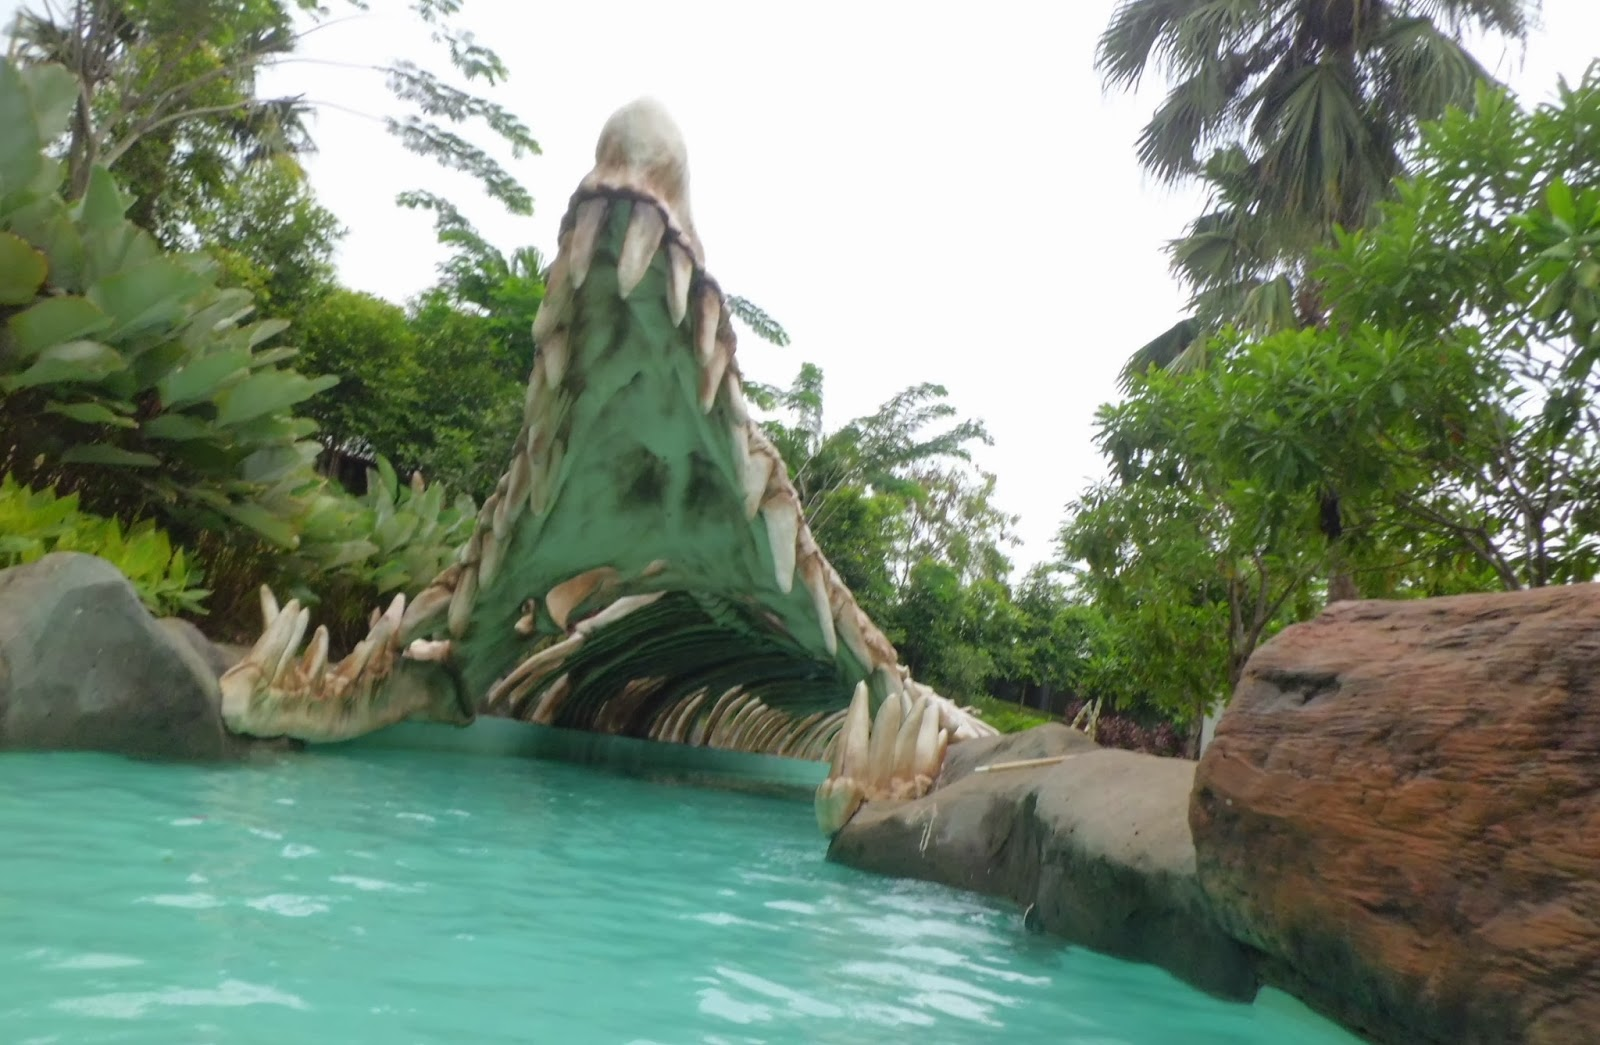 Sakahayang Water Kingdom Cileungsi Voucher Waterkingdom Lazy River